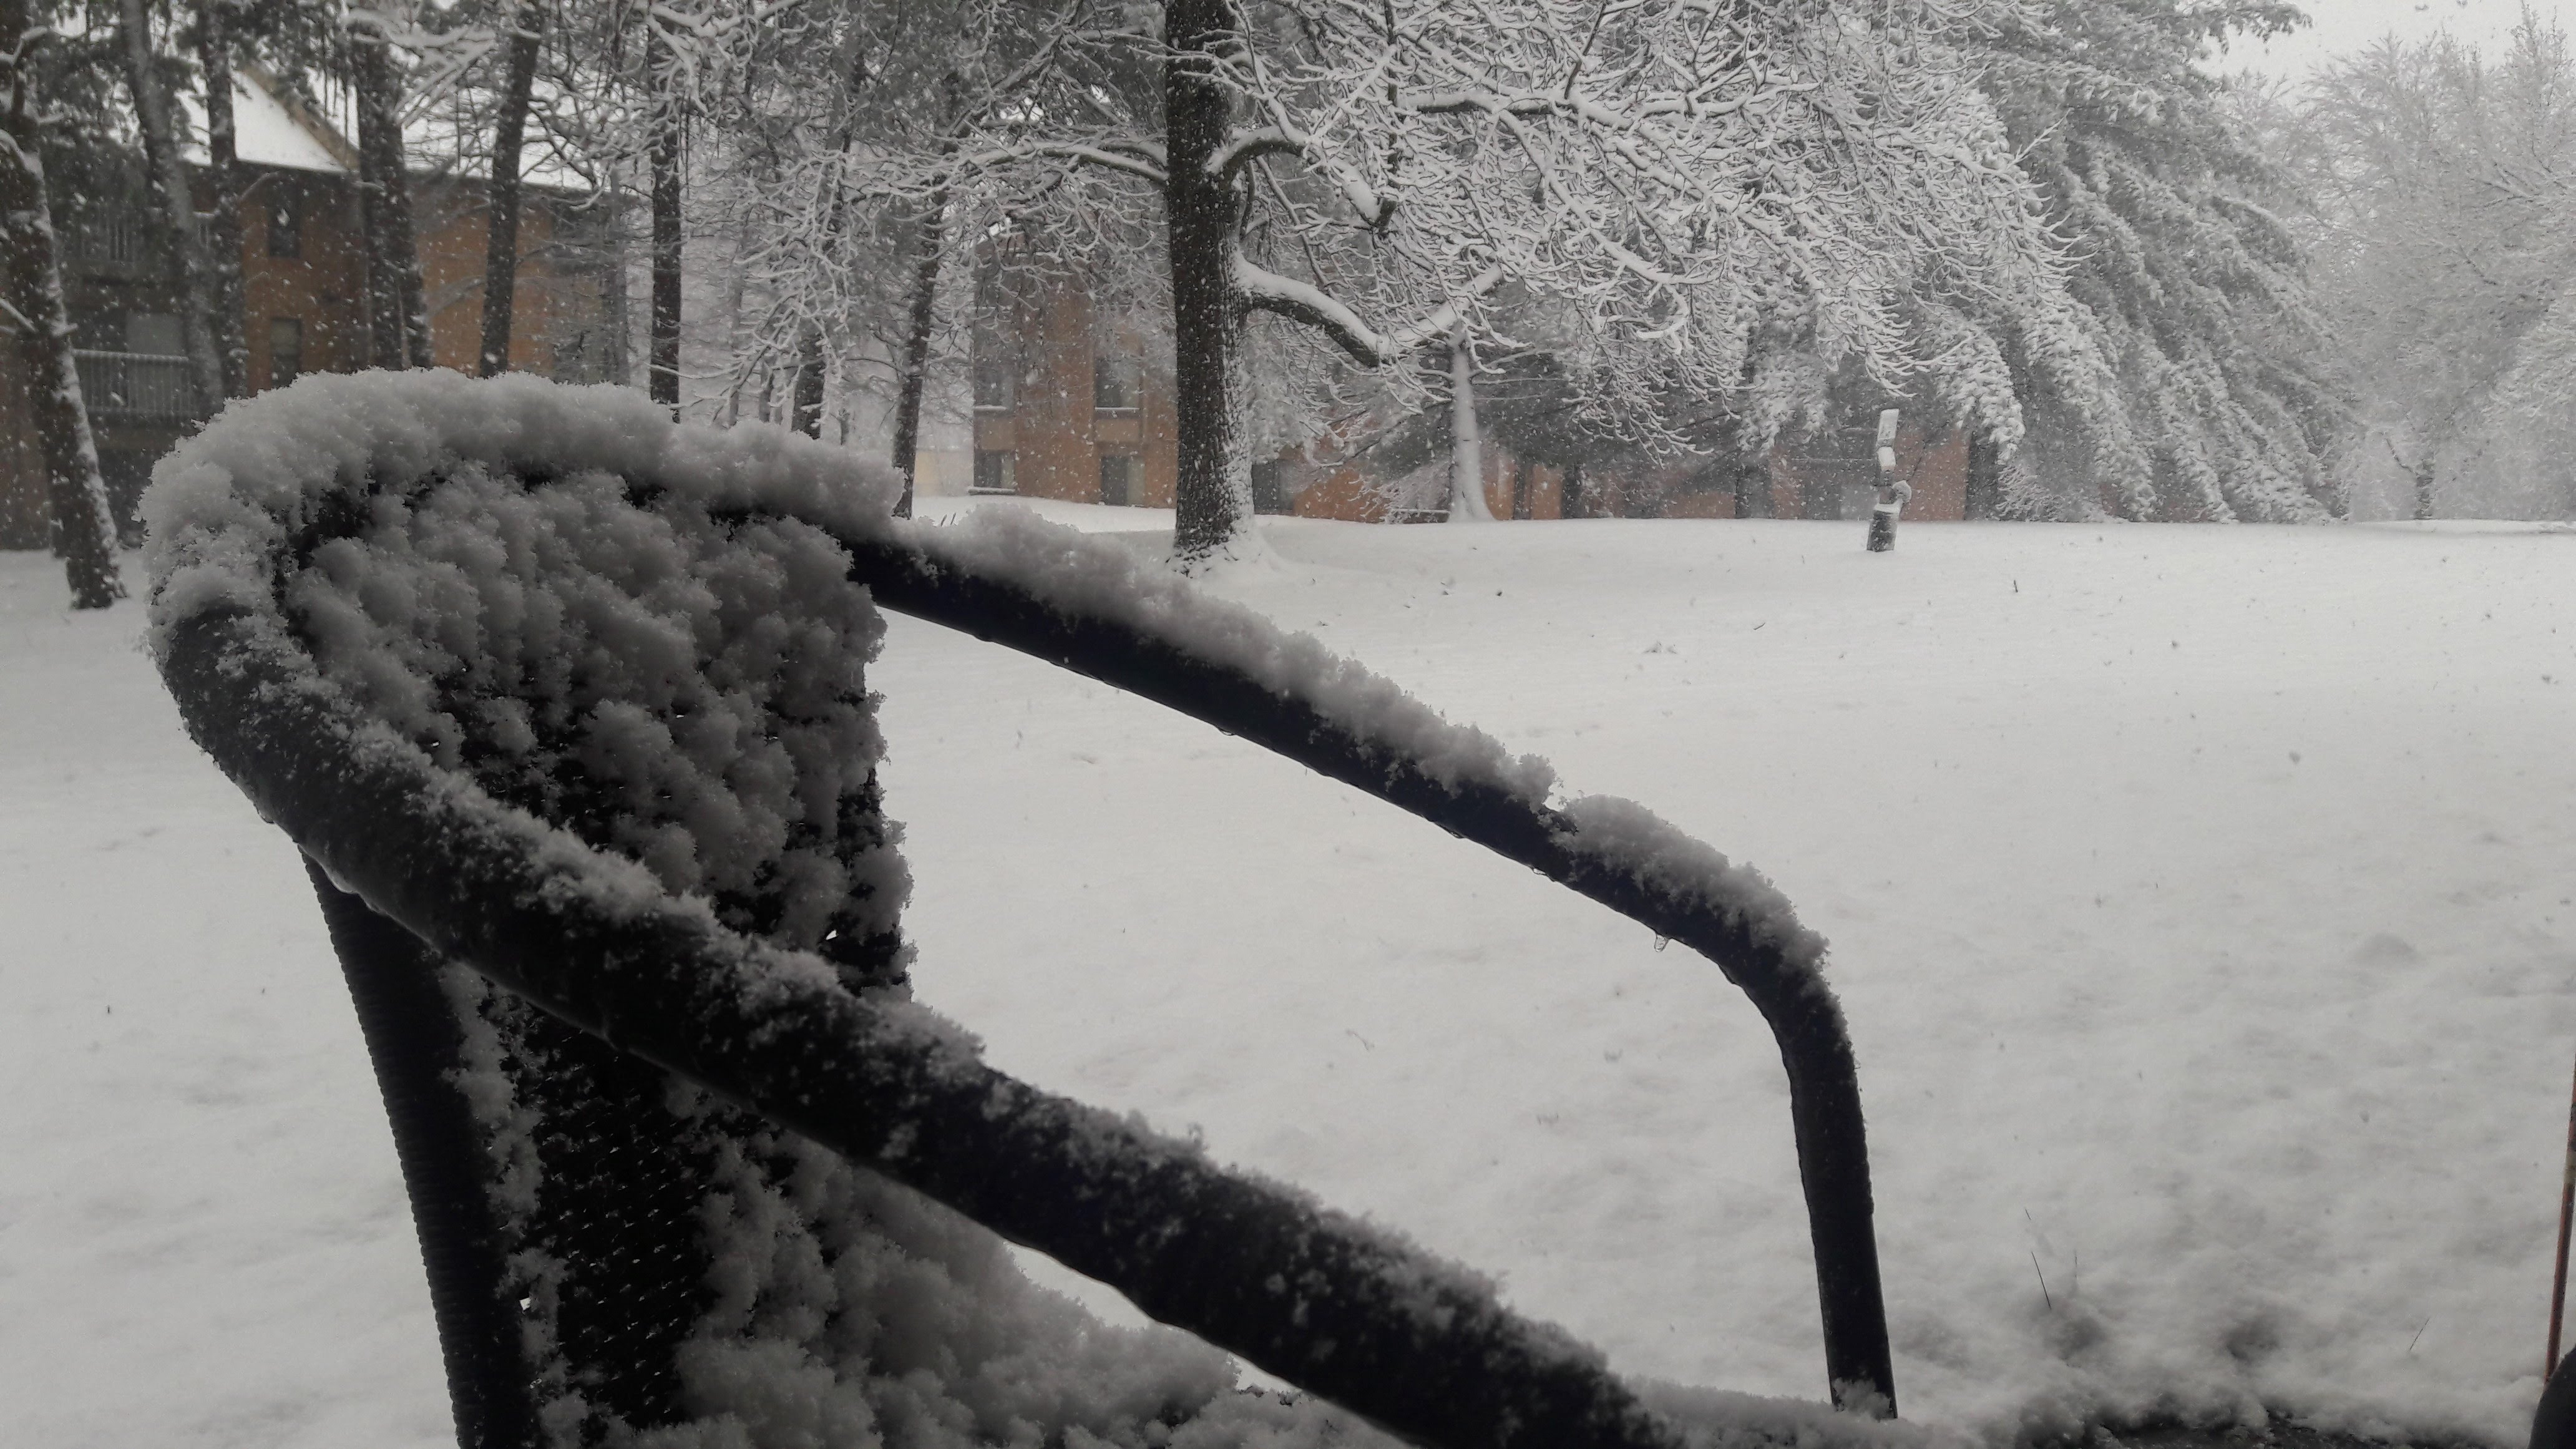 snow day on the 2nd day of spring 2018